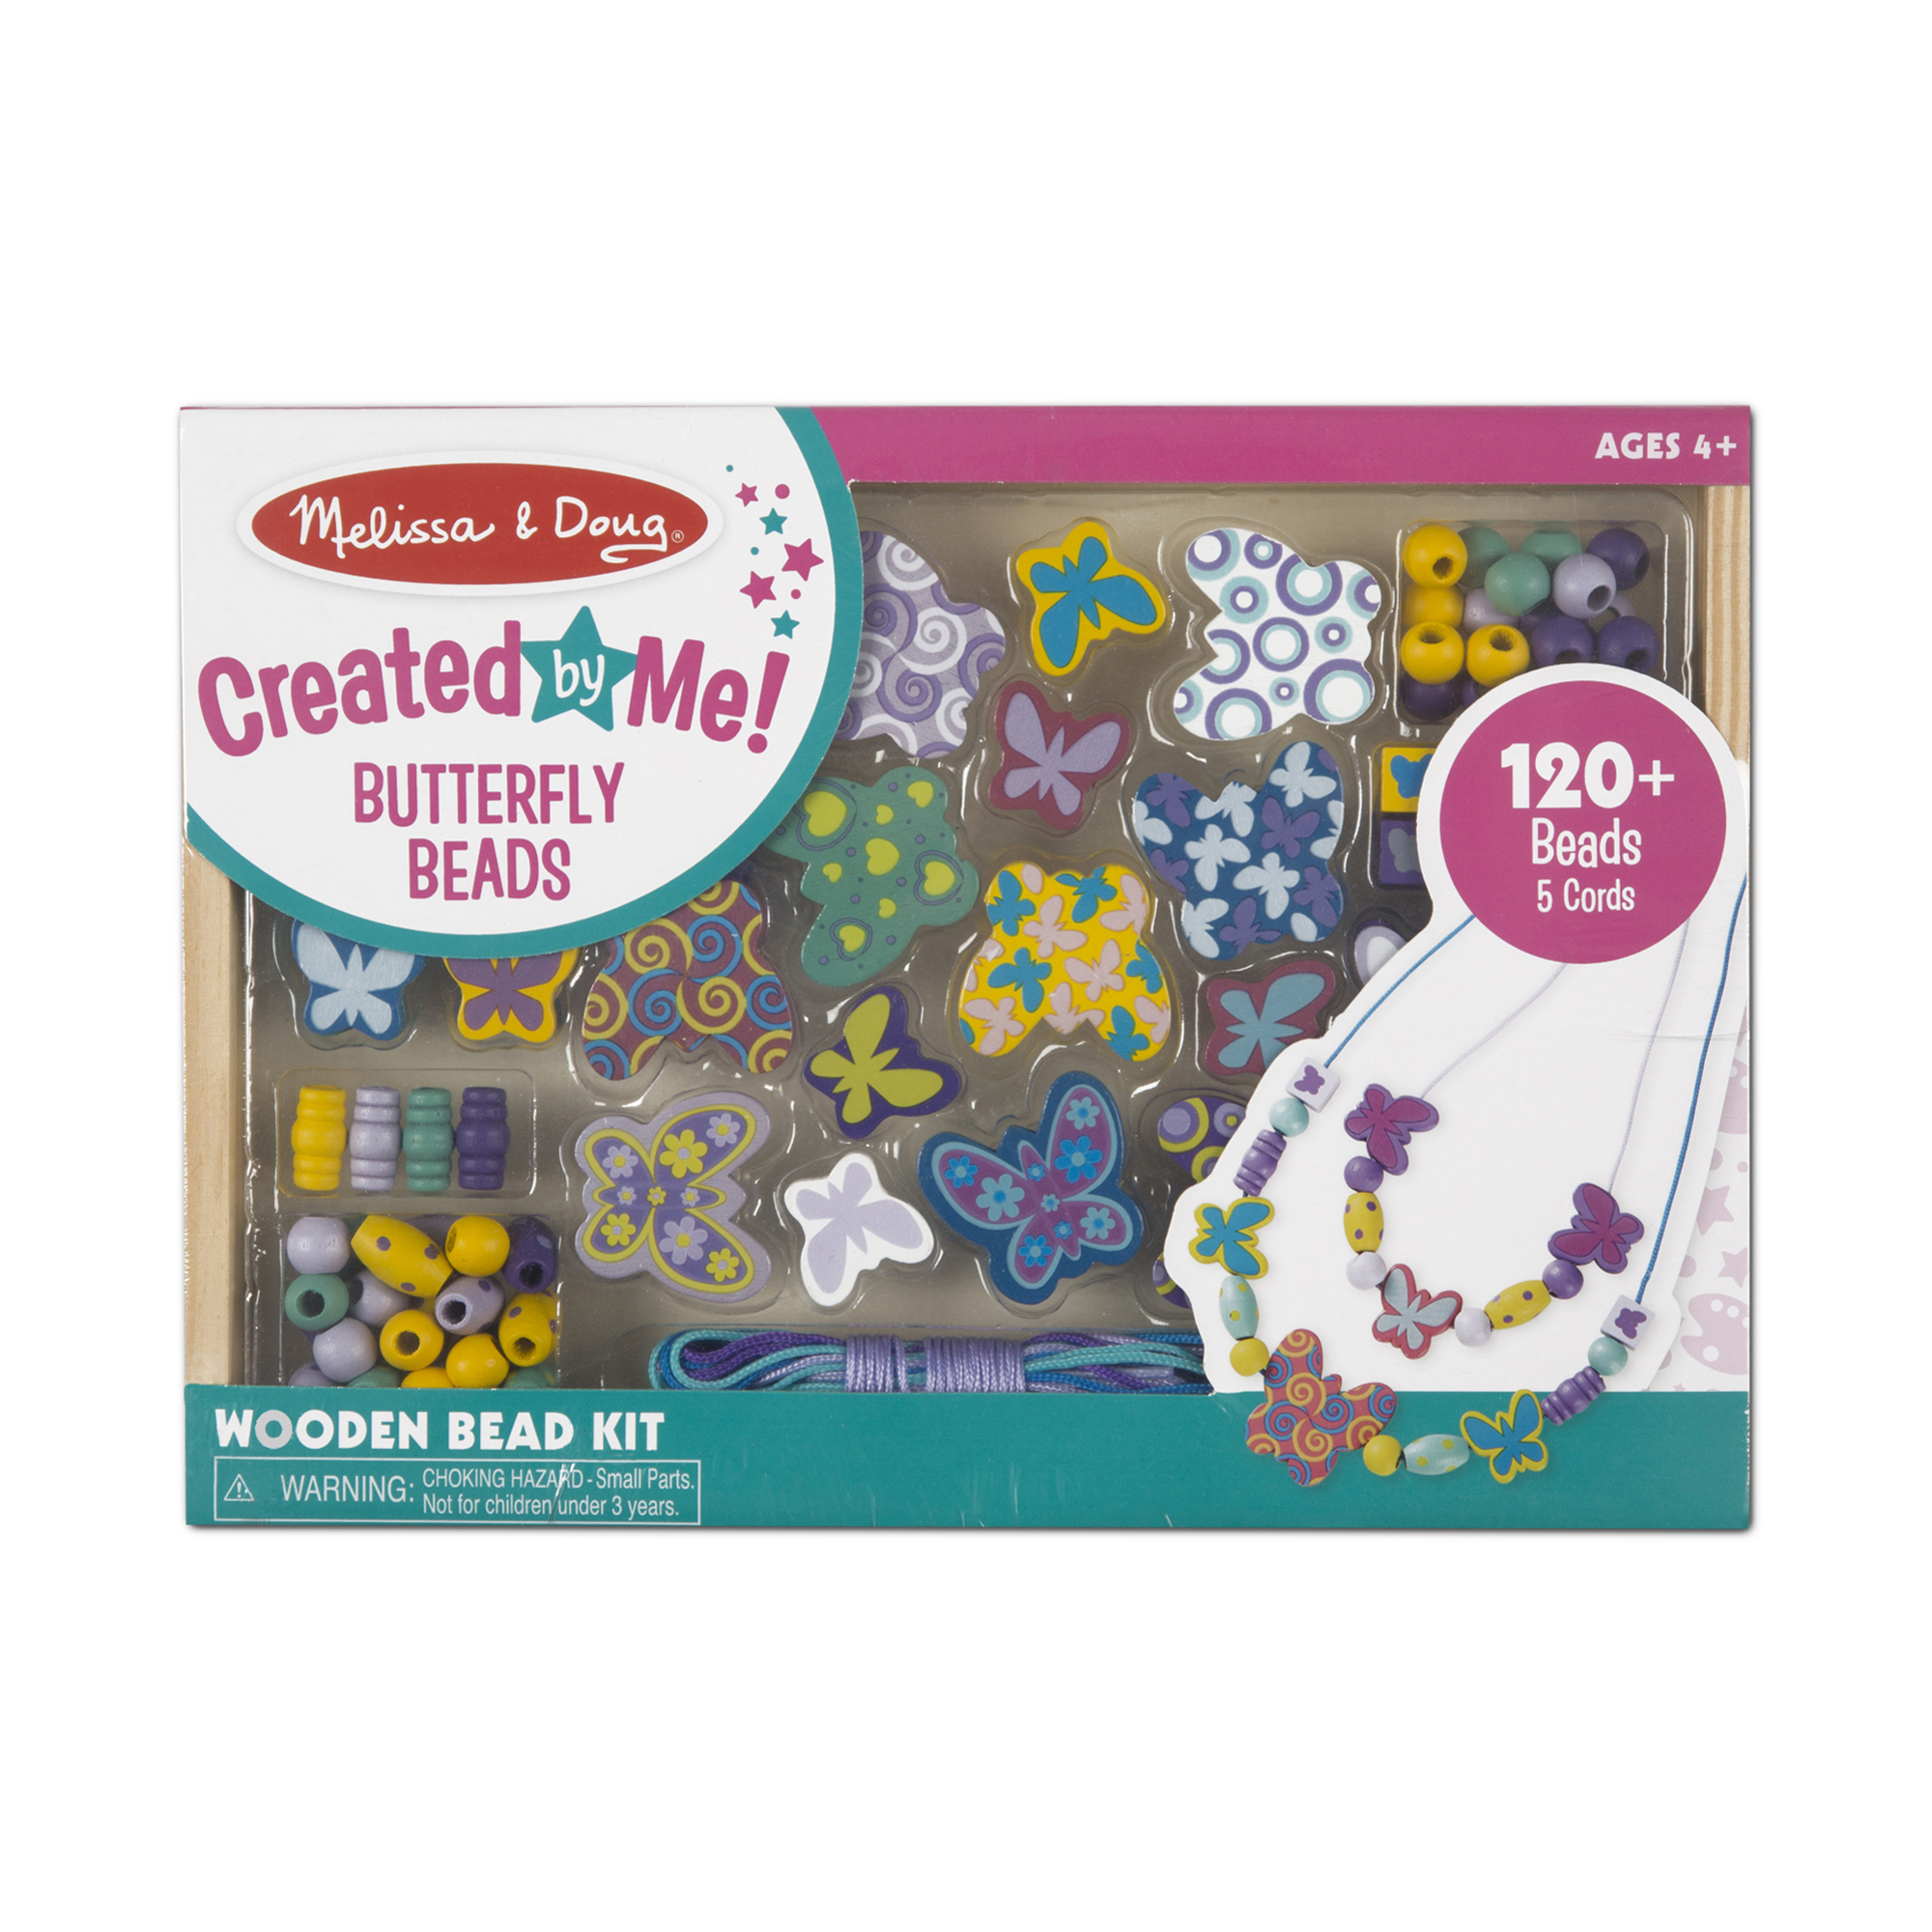 Melissa & Doug  ~ Created by Me! Butterfly Beads Wooden Bead Kit ~ 4+